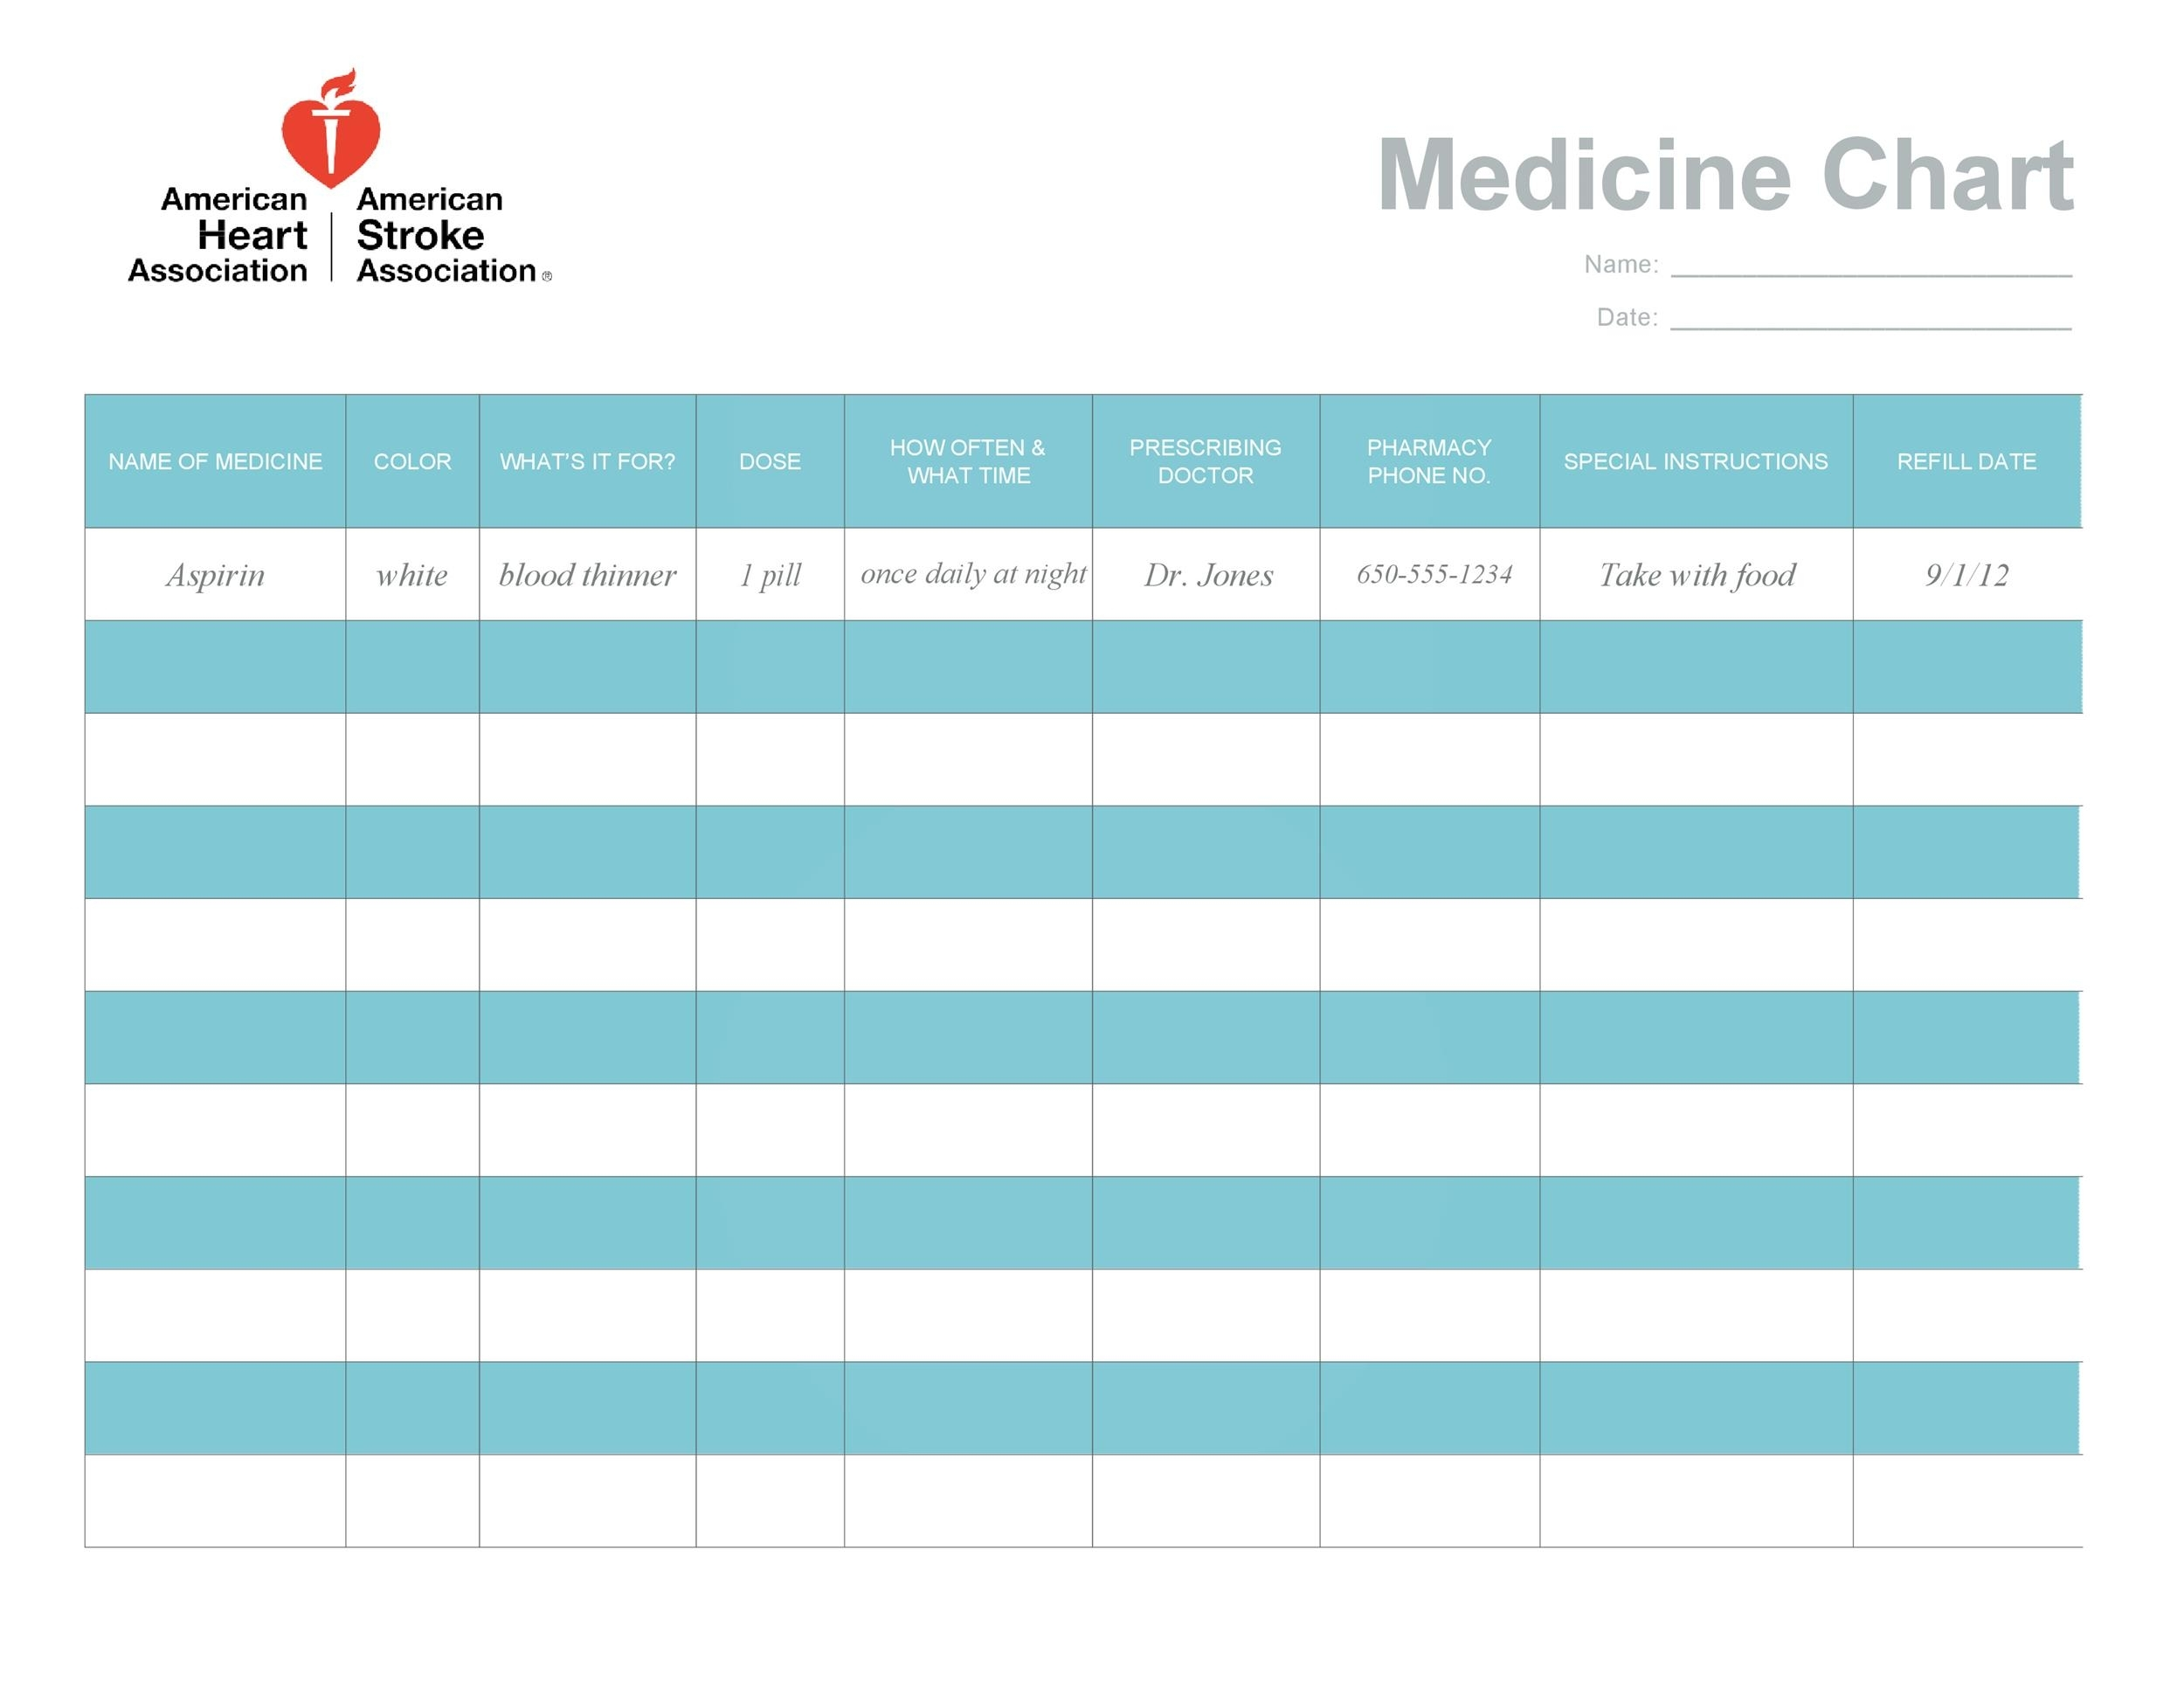 40 Great Medication Schedule Templates (+Medication Calendars)